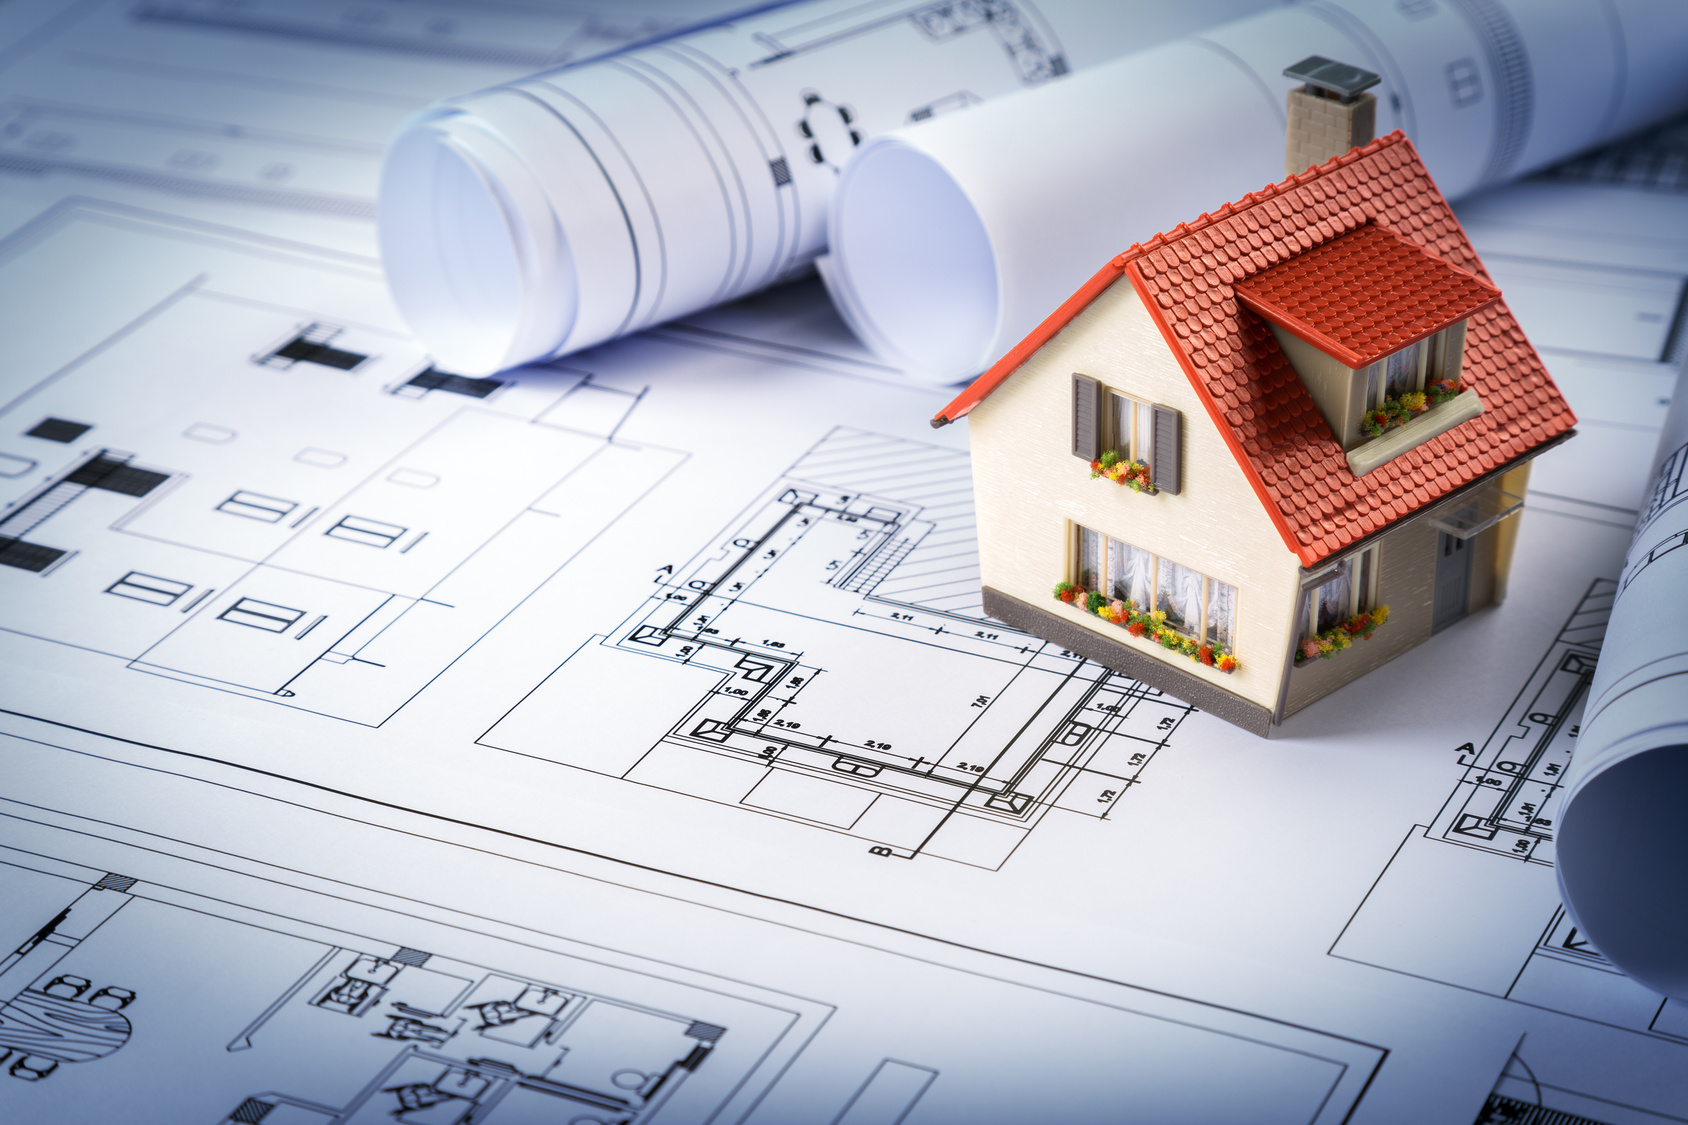 Le tarif pour faire r aliser les plans d 39 une maison les for Plan de construction maison